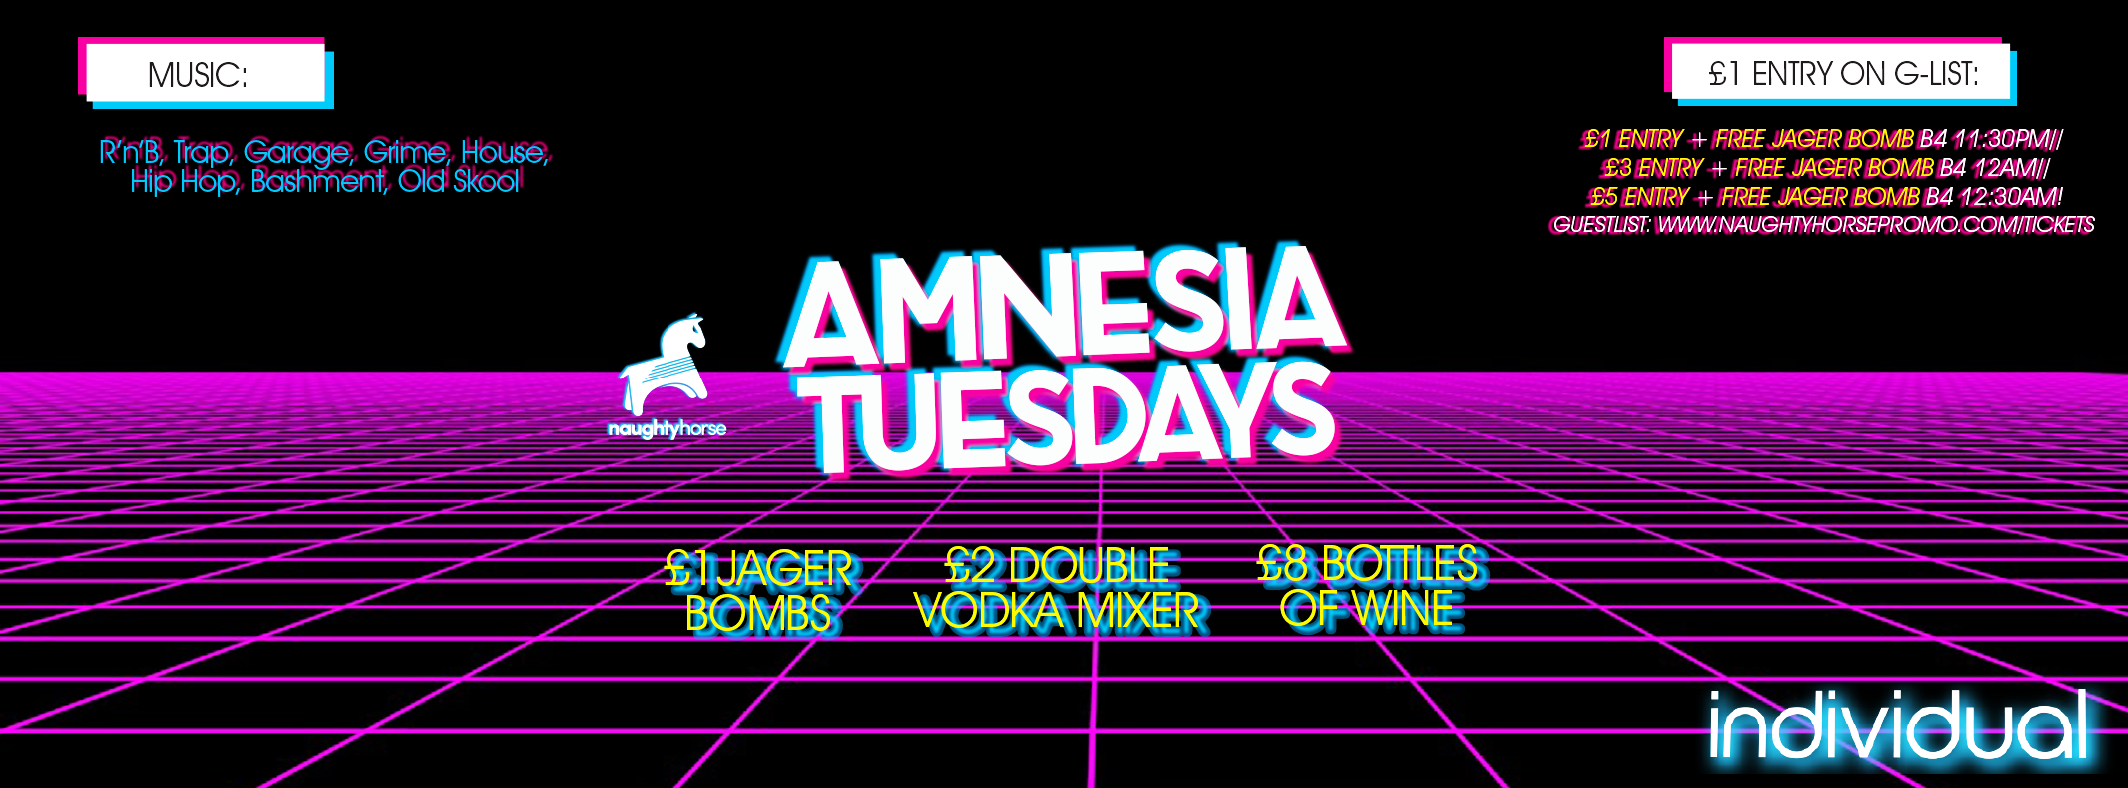 AMNESIA TUESDAYS – End of Term part 1! £1 Entry + FREE JAGERBOMB Guestlist*!